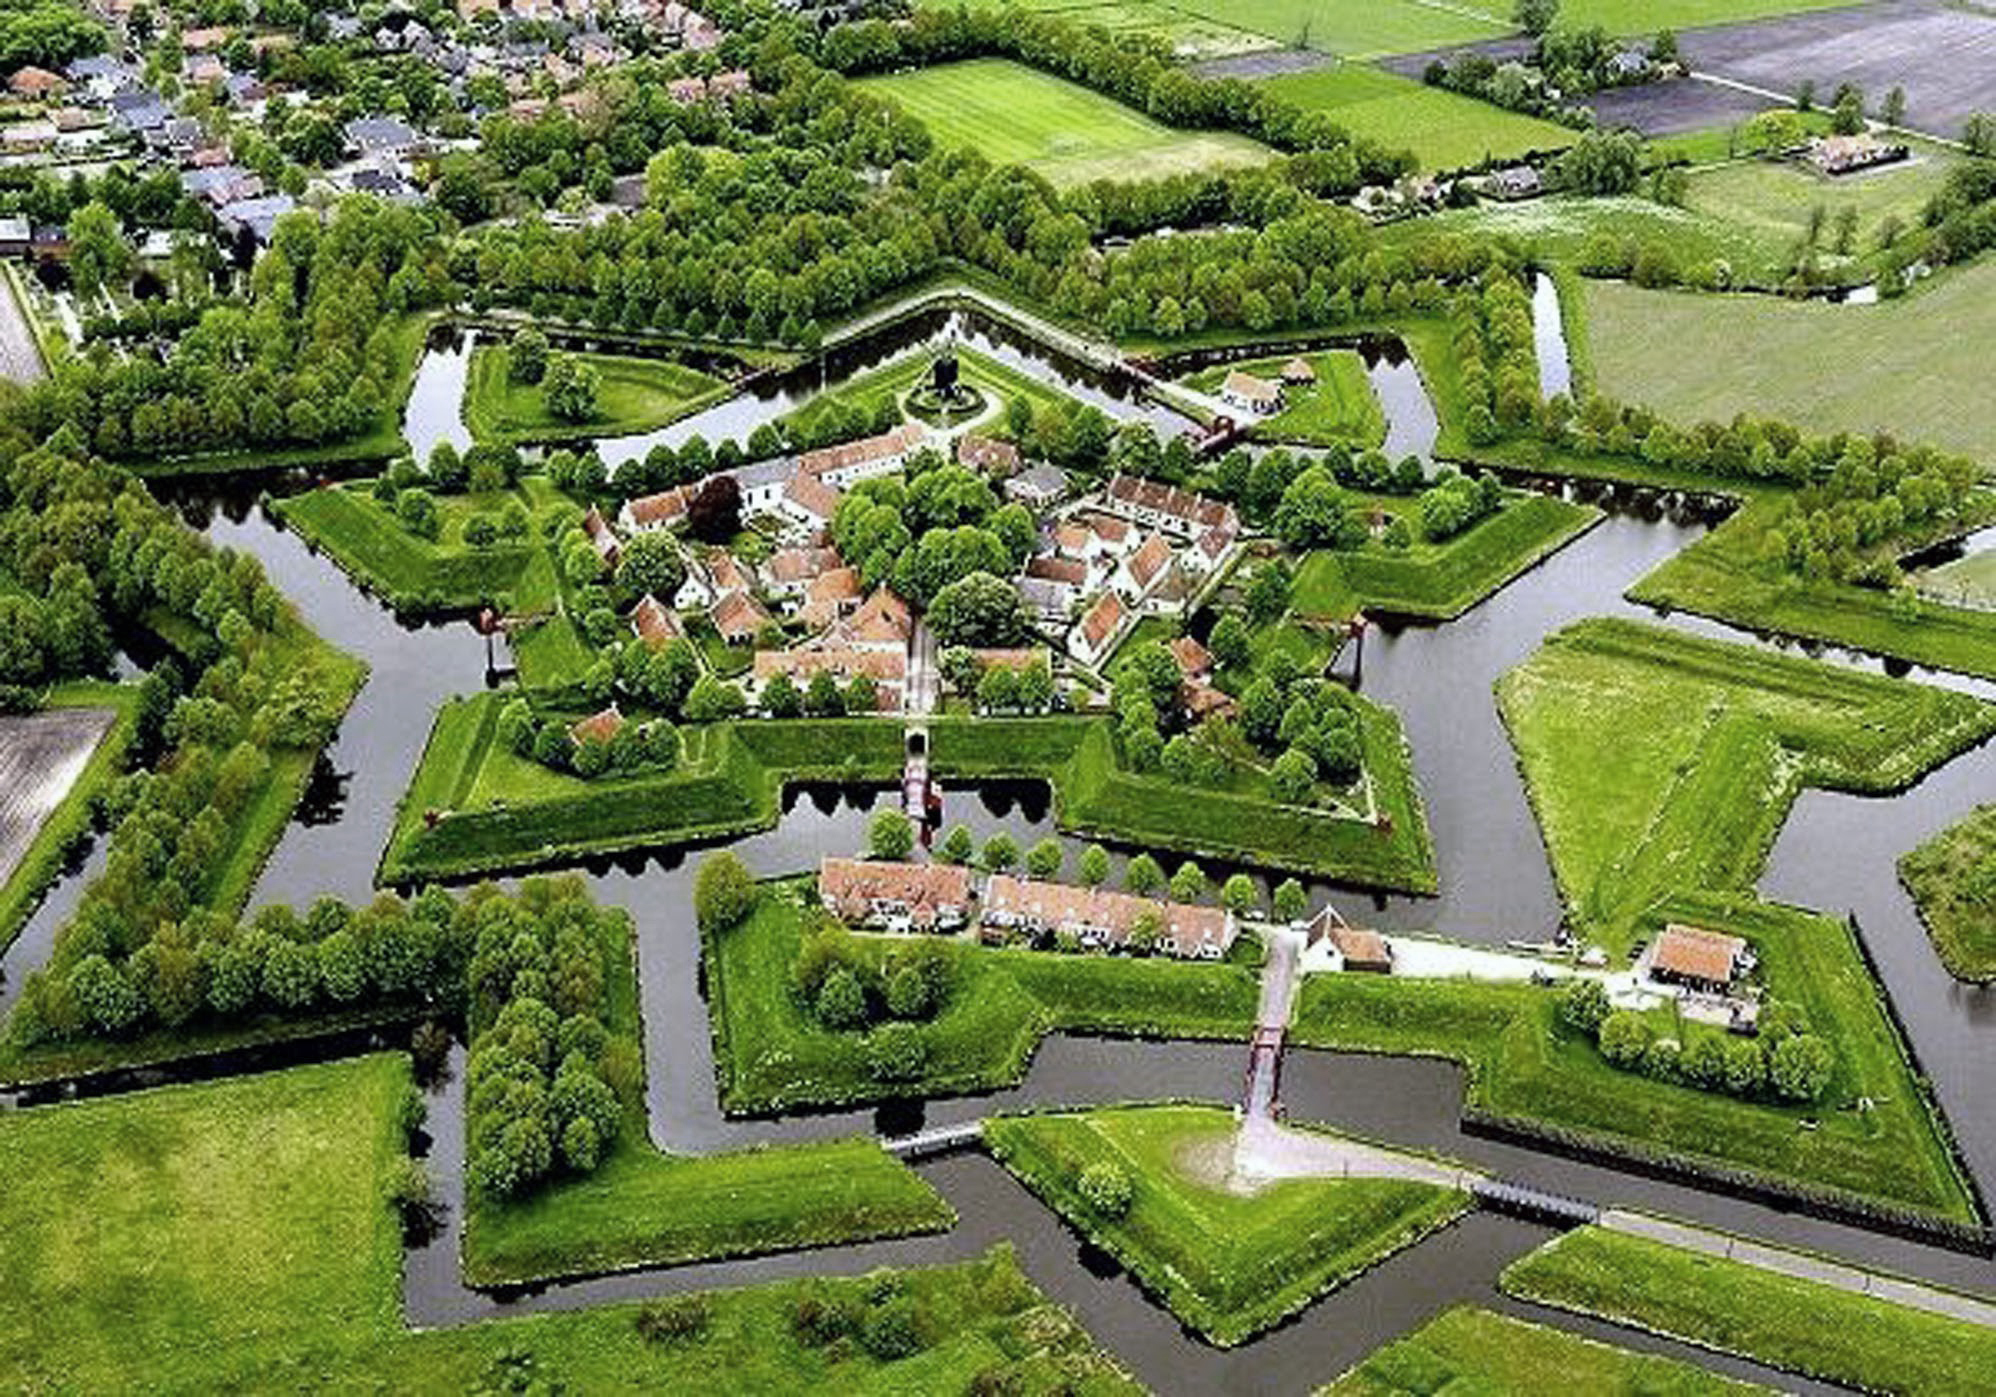 https://upload.wikimedia.org/wikipedia/commons/0/00/Luchtfoto_bourtange.jpg